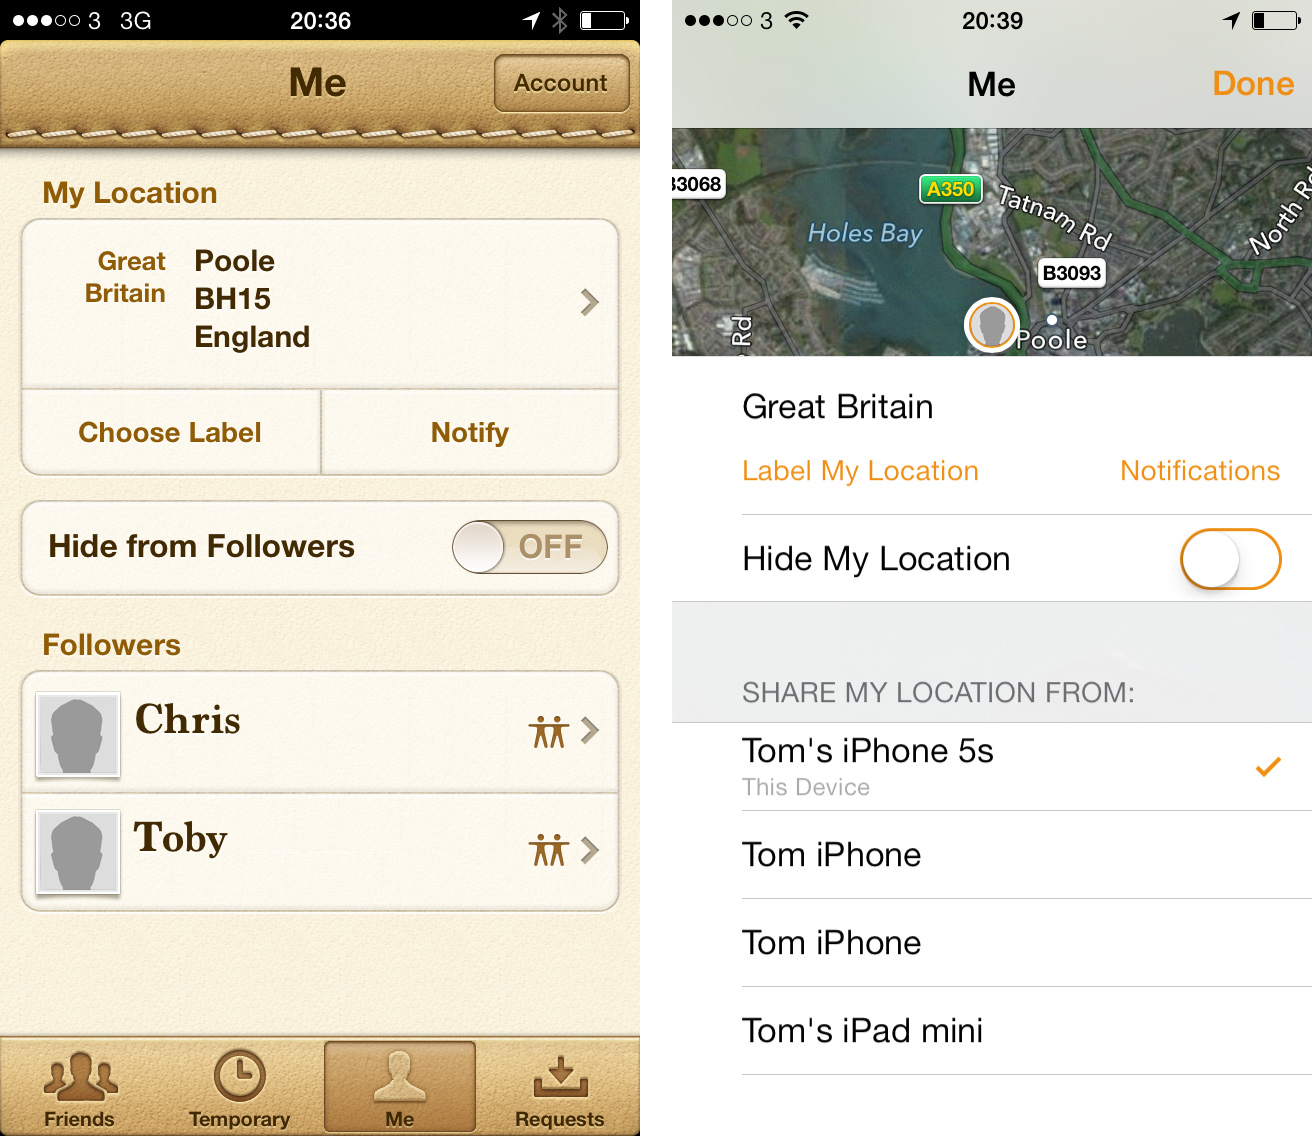 Find My Friends app updated with new interface for iOS 7